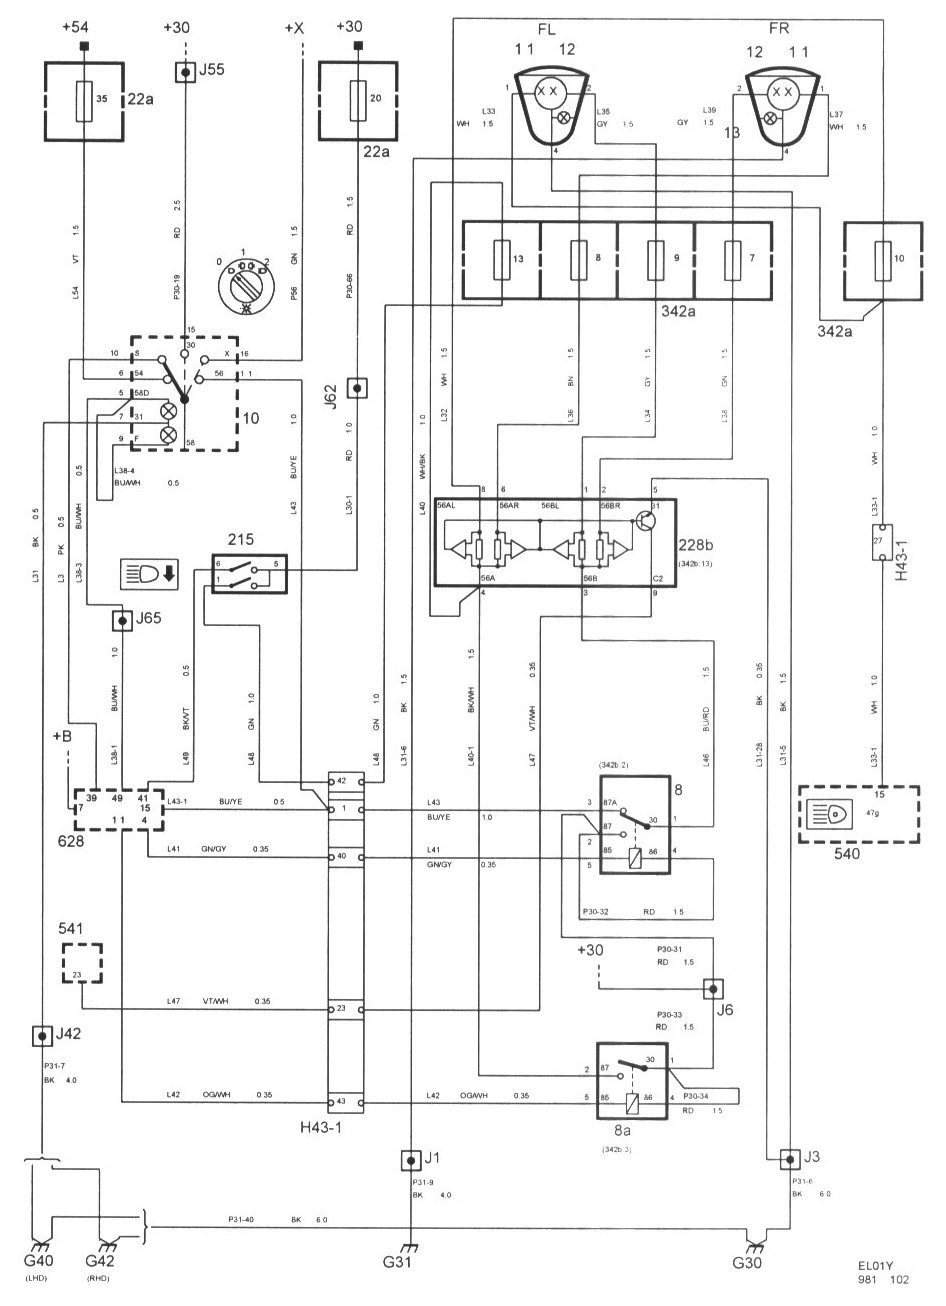 2010 01 19_153656_saab 1993 saab wiring diagram wiring diagram simonand 2006 saab 93 wiring diagram at mifinder.co